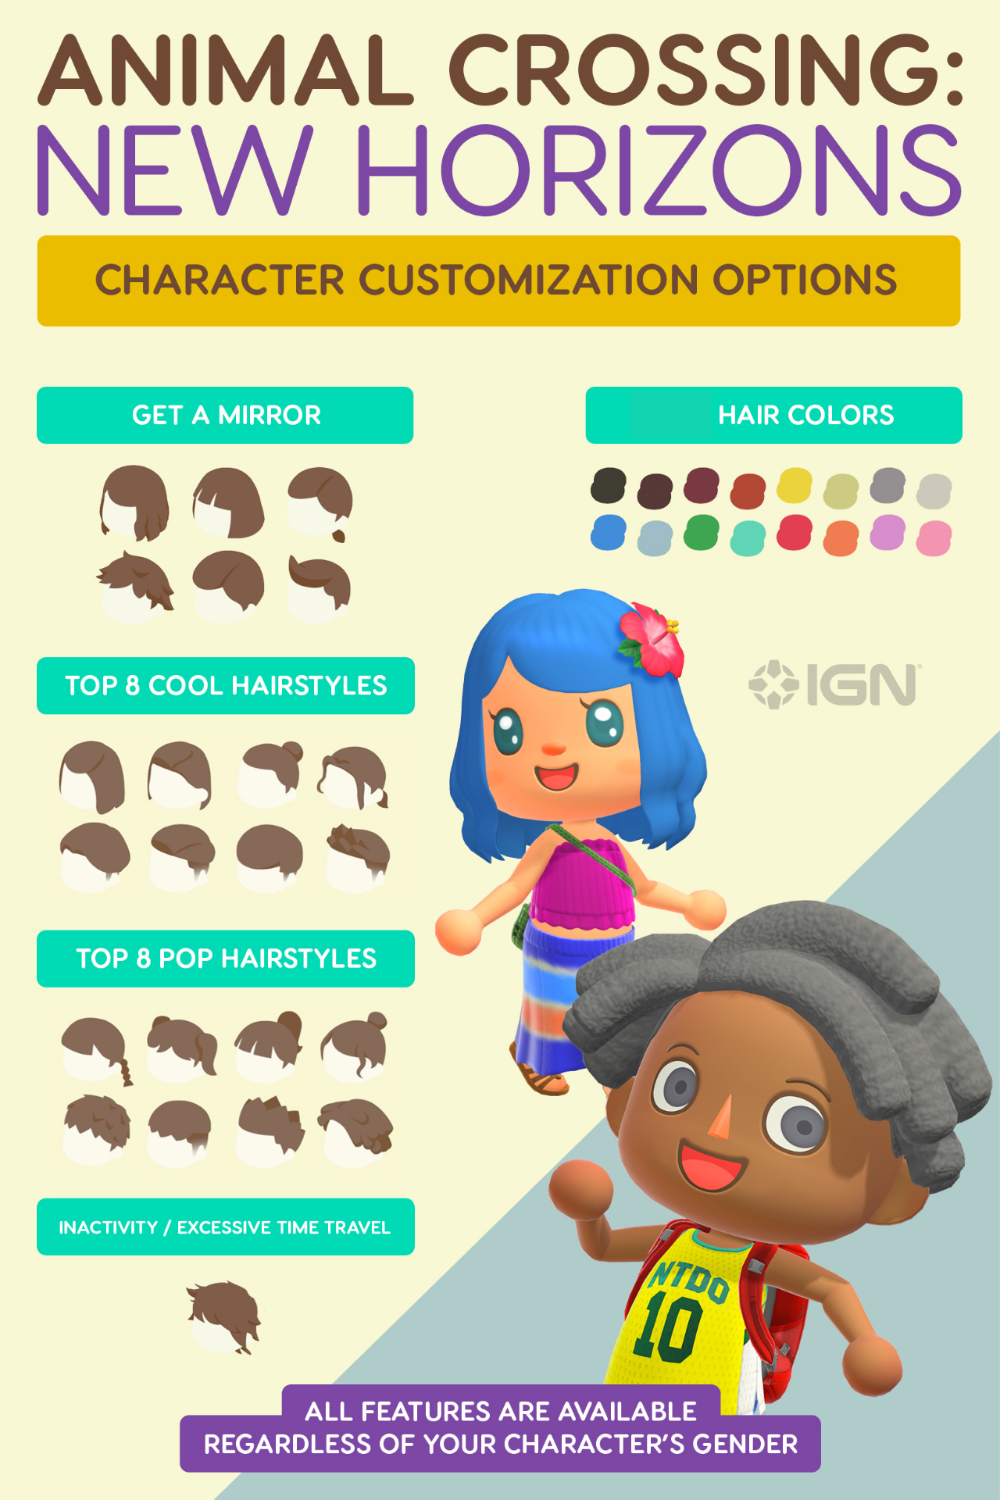 Pin By Tindaloo On Gaming In 2020 Animal Crossing Hair Animal Crossing Hair Guide Hair Color Guide